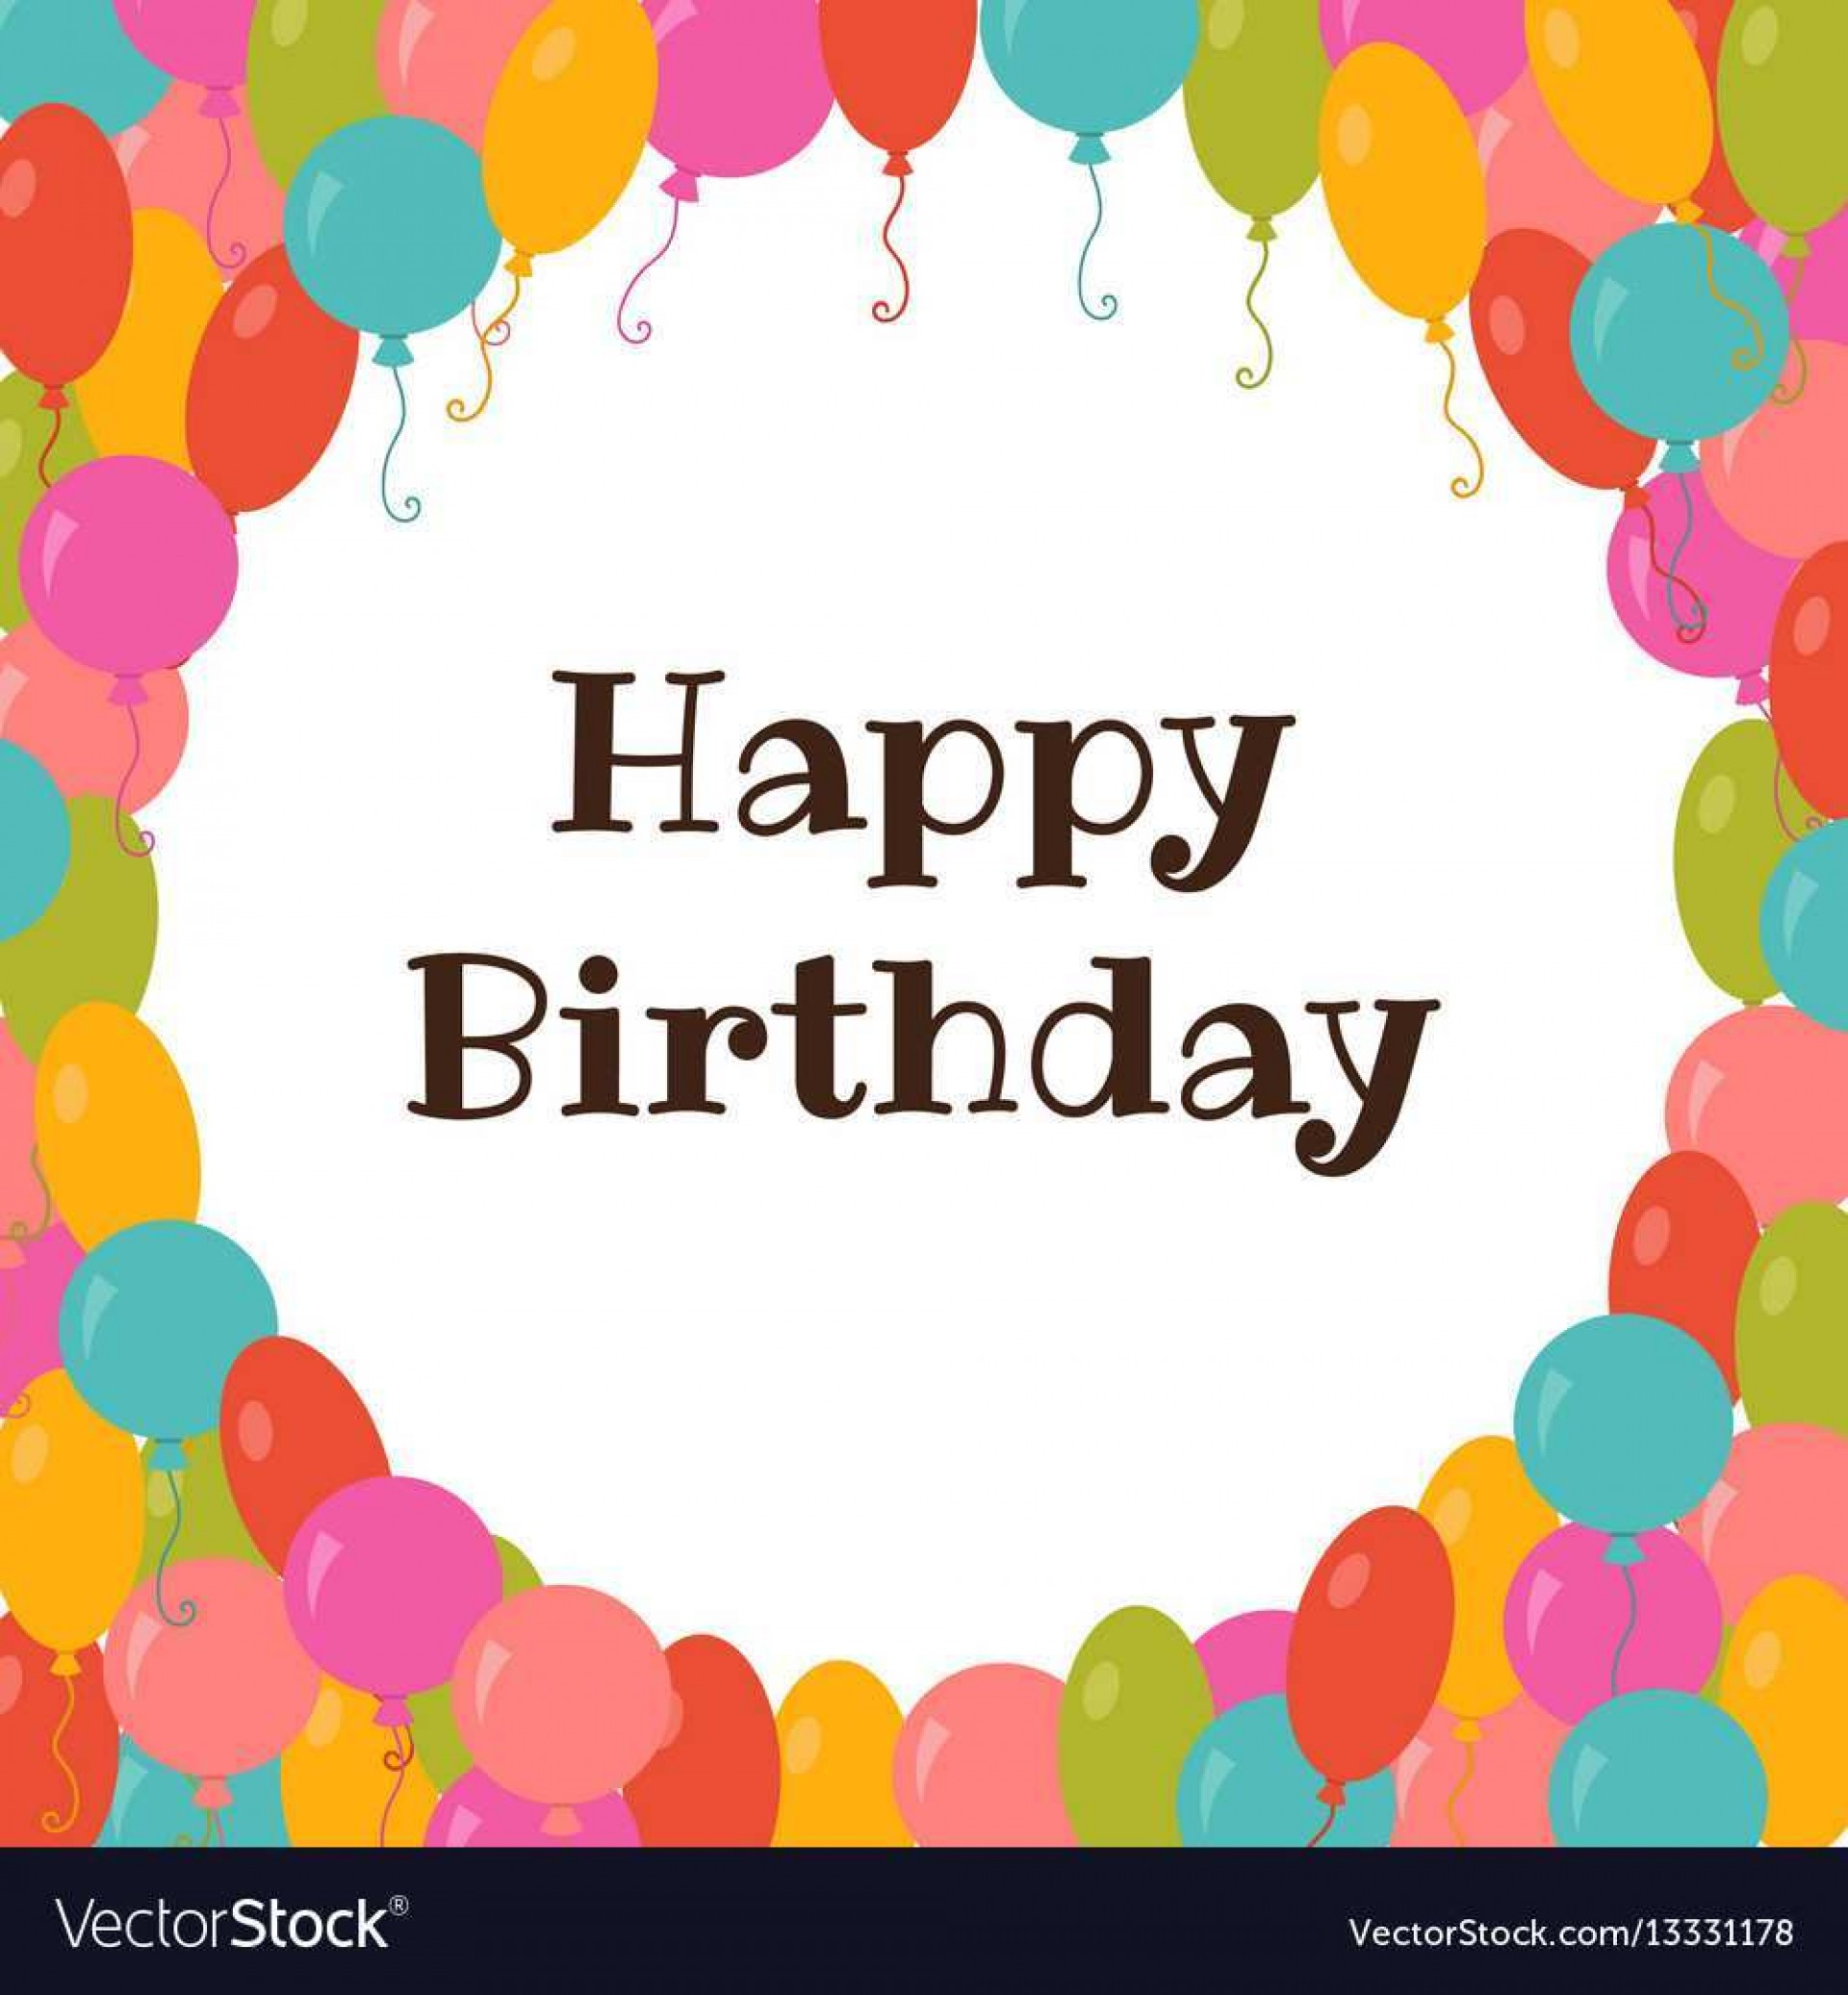 002 Unusual Birthday Card Template Photoshop Image  Greeting Format 4x6 Free1920